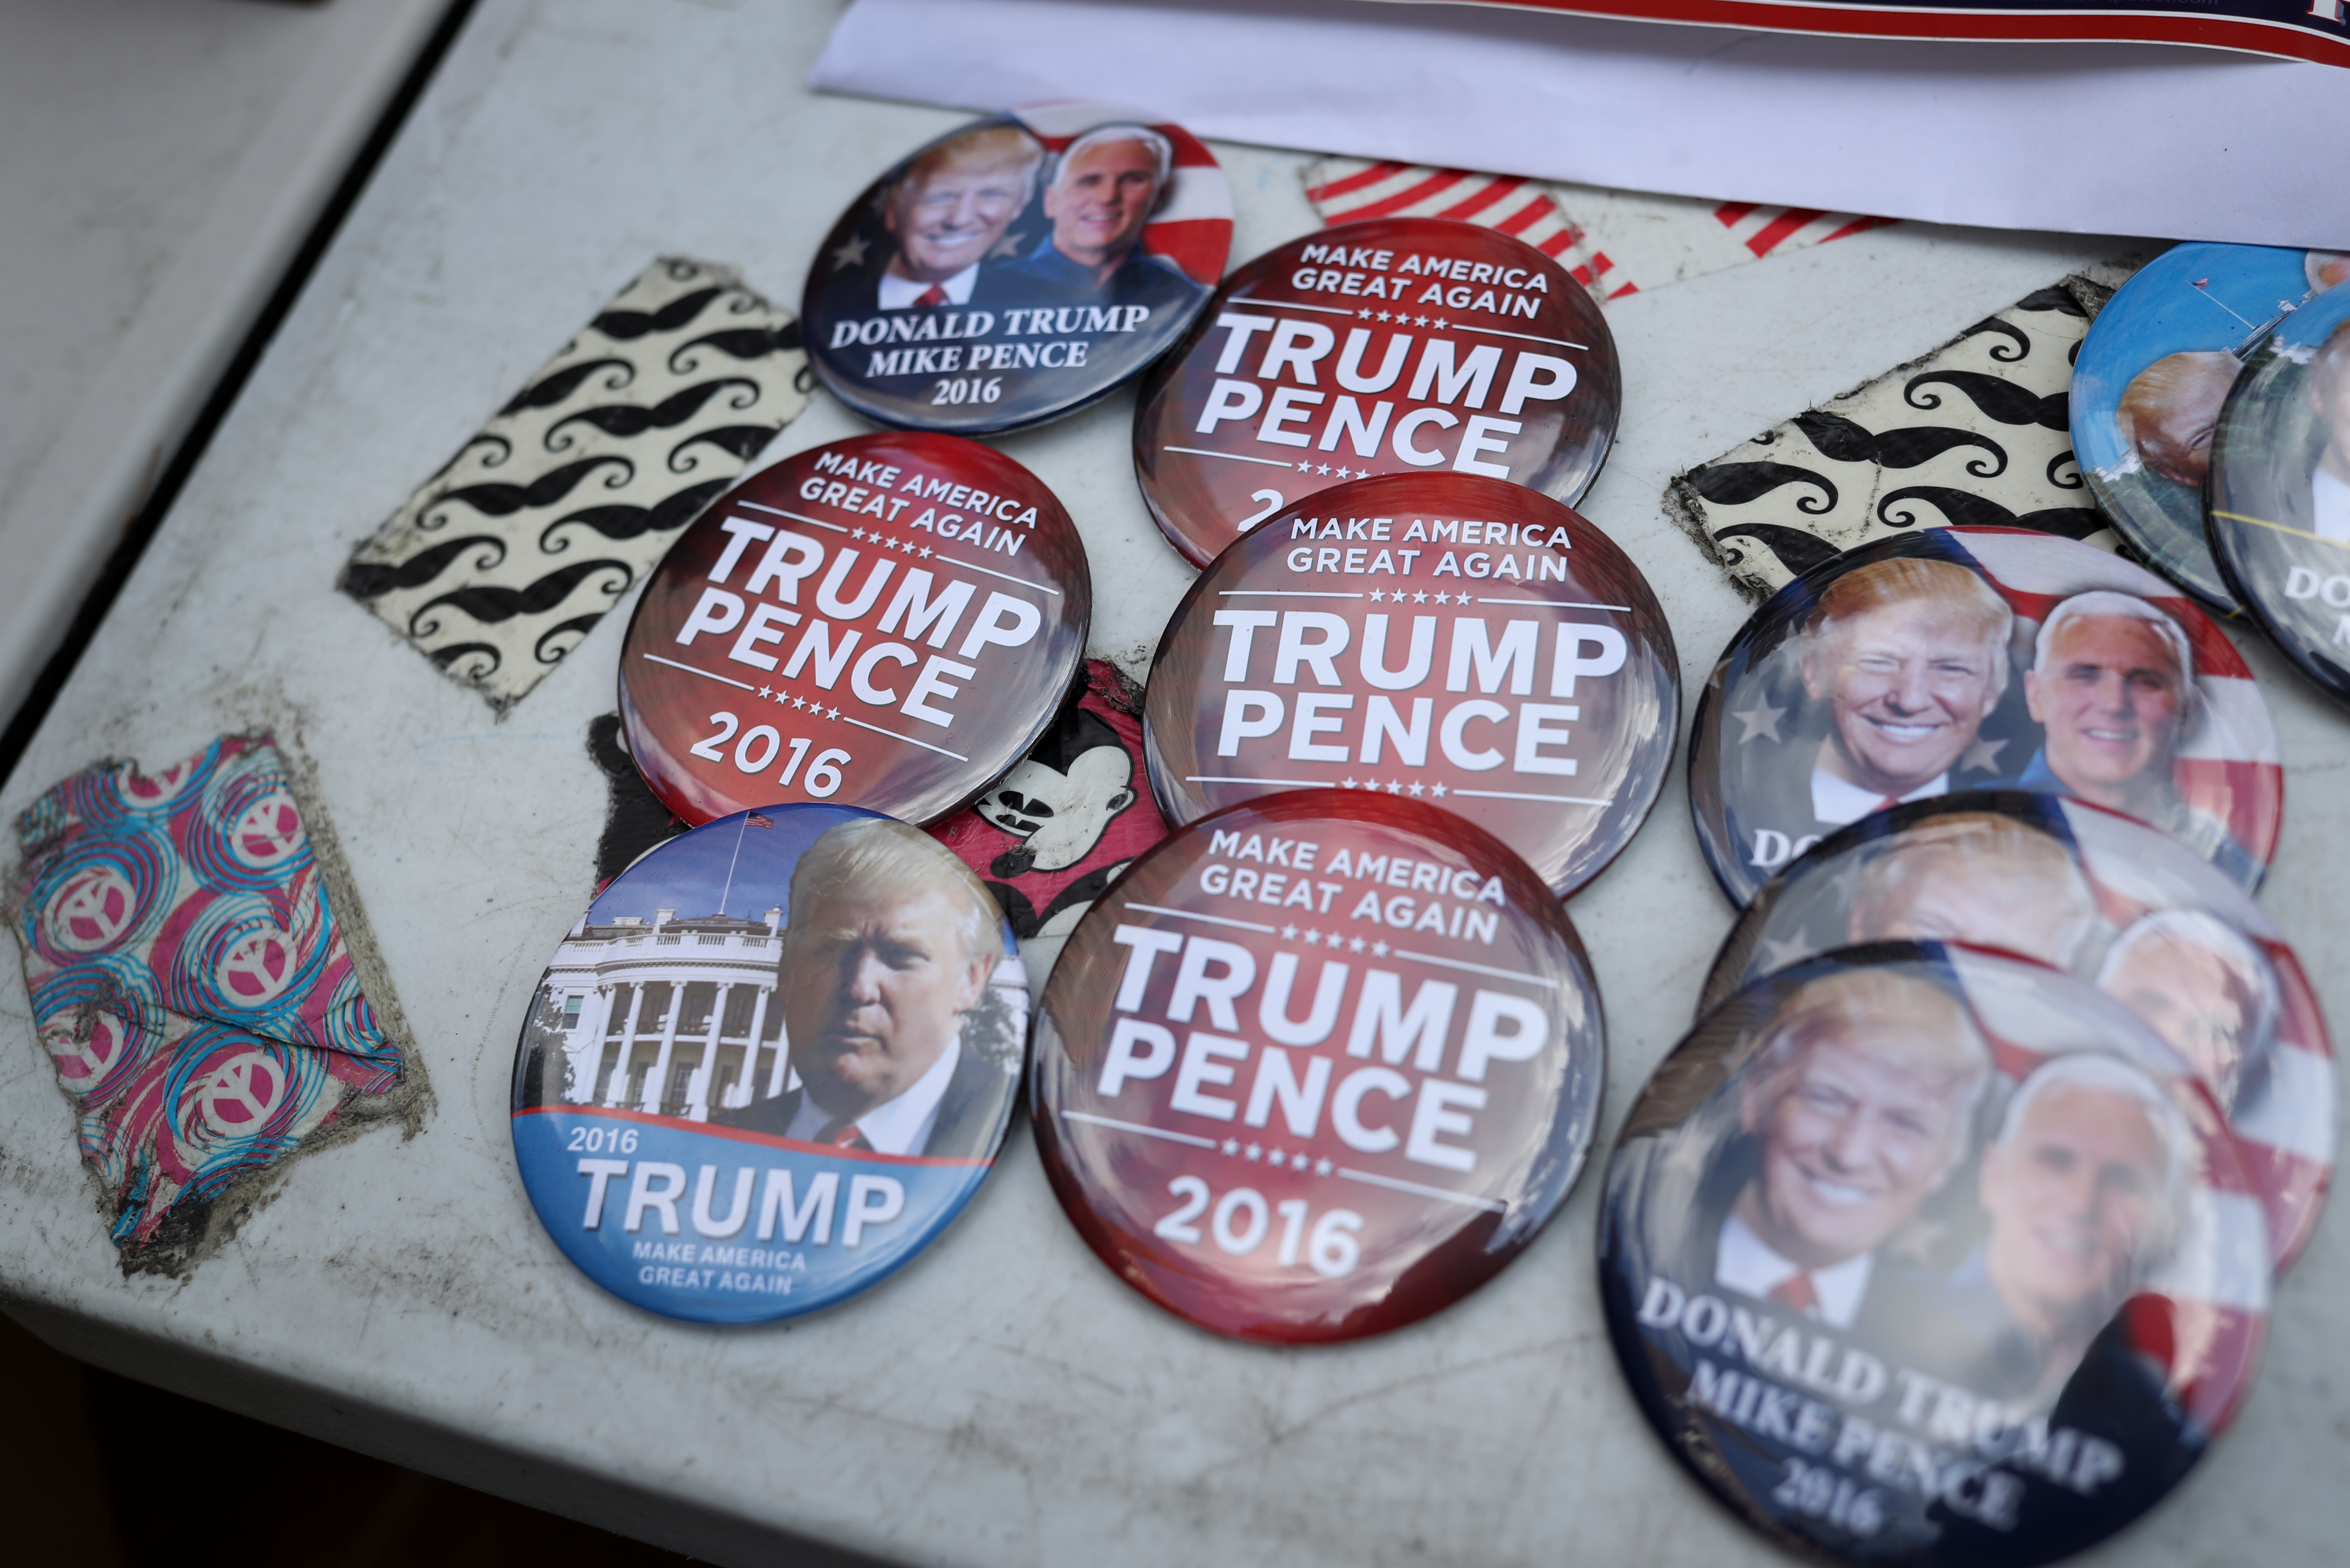 Buttons in support of Donald Trump, presumptive 2016 Republican presidential nominee, and Mike Pence, presumptive 2016 Republican vice presidential nominee, are displayed ahead of the Republican National Convention (RNC) in Cleveland, Ohio, U.S., on July 17, 2016.